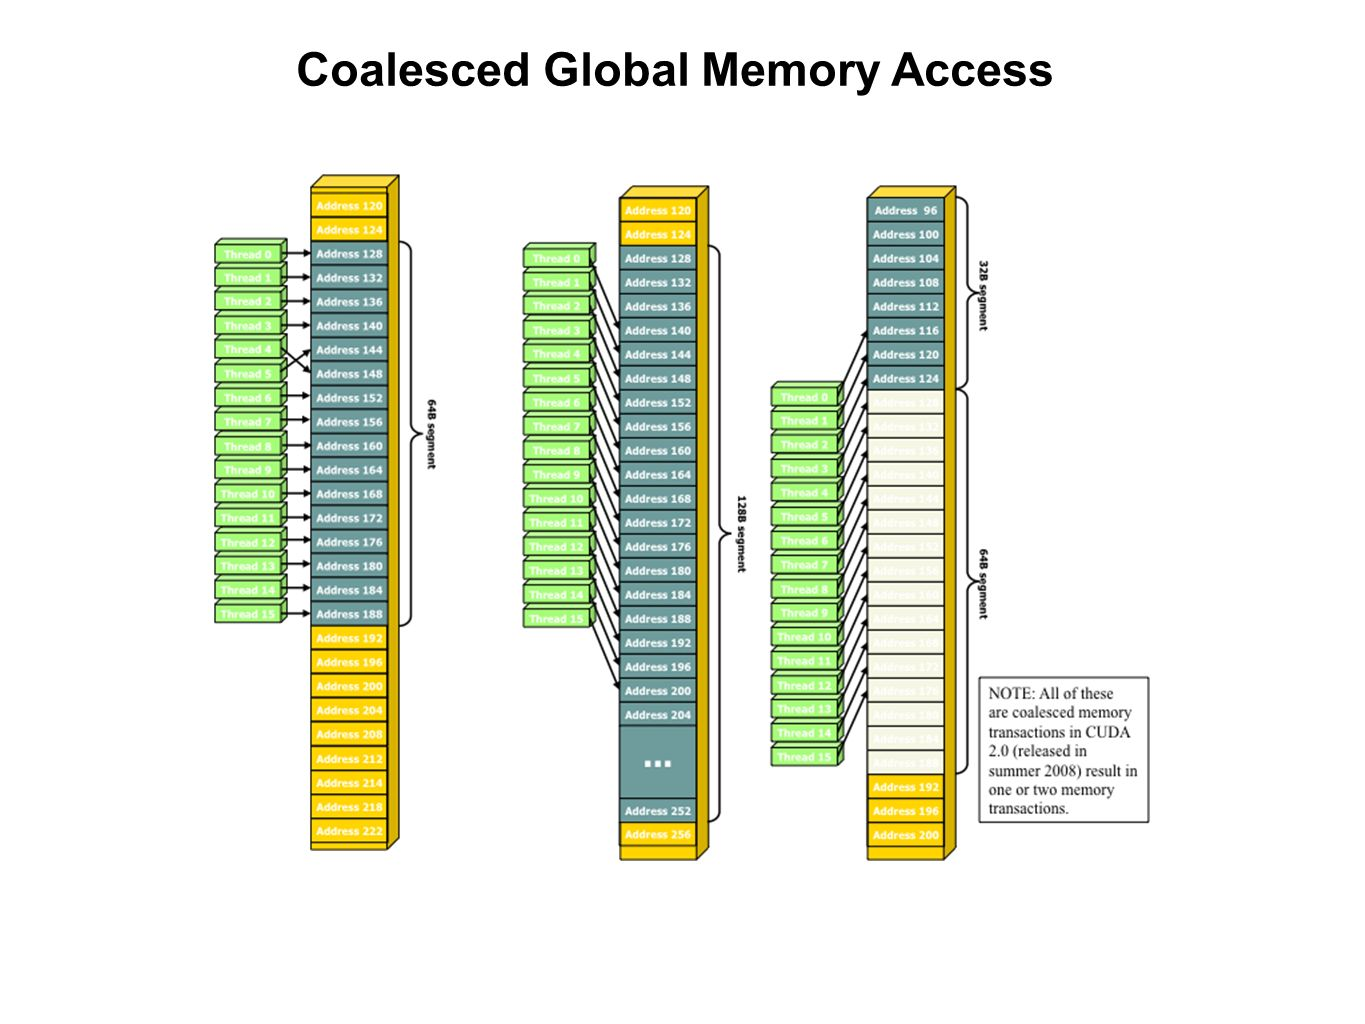 Coalesced Global Memory Access